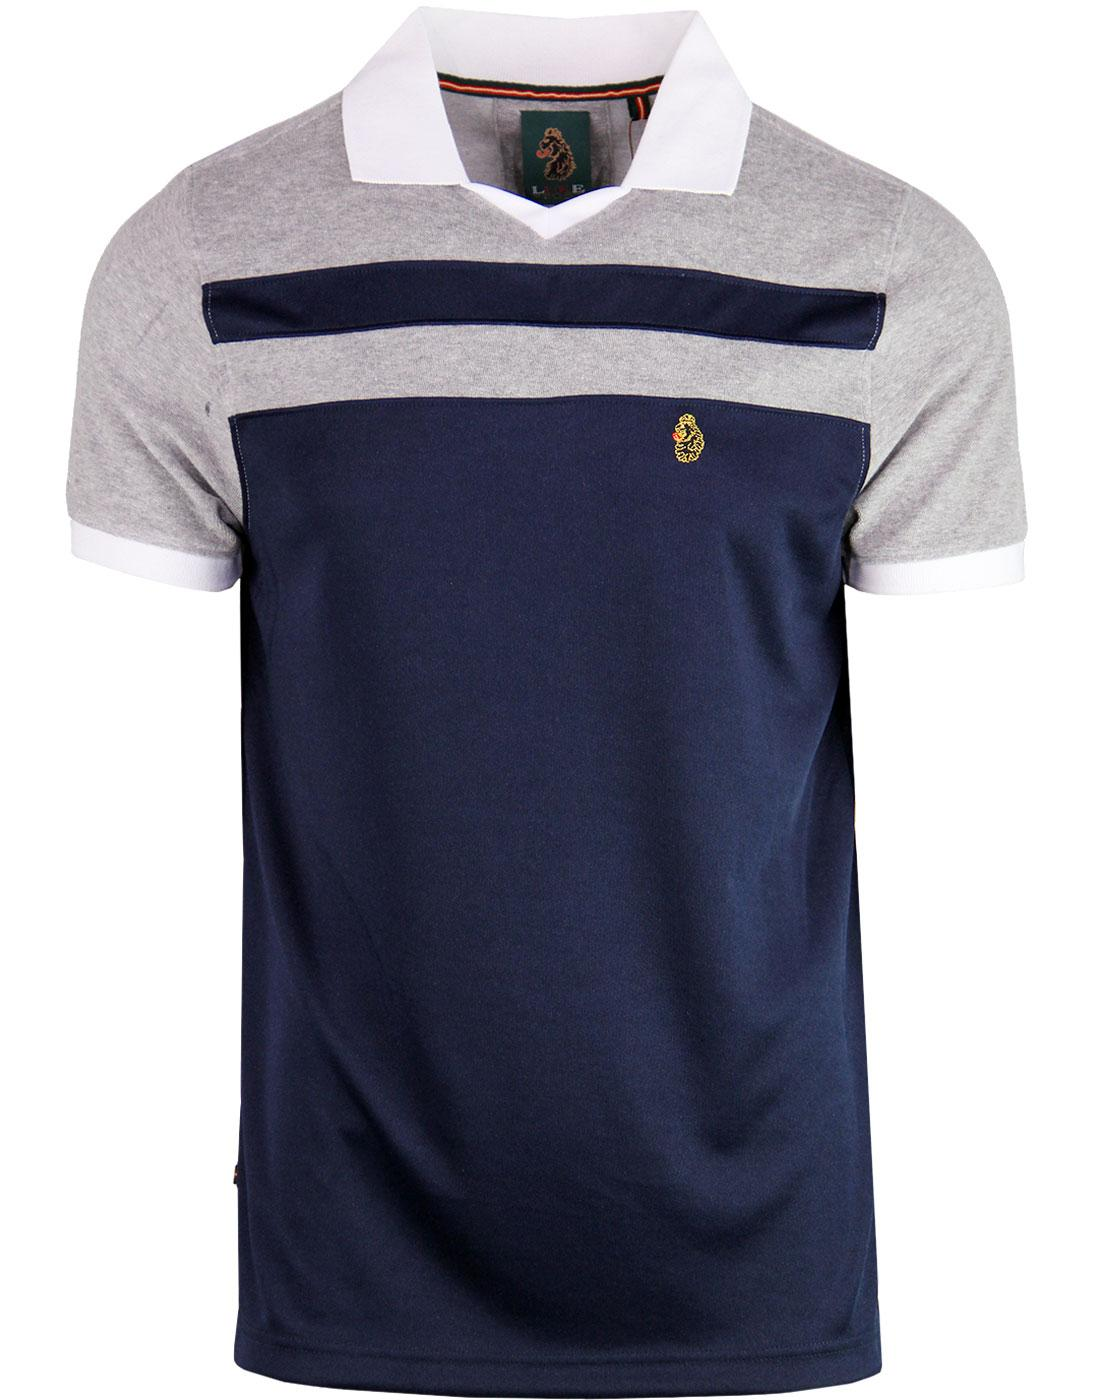 Away LUKE 1977 Retro Indie Football Collar Polo